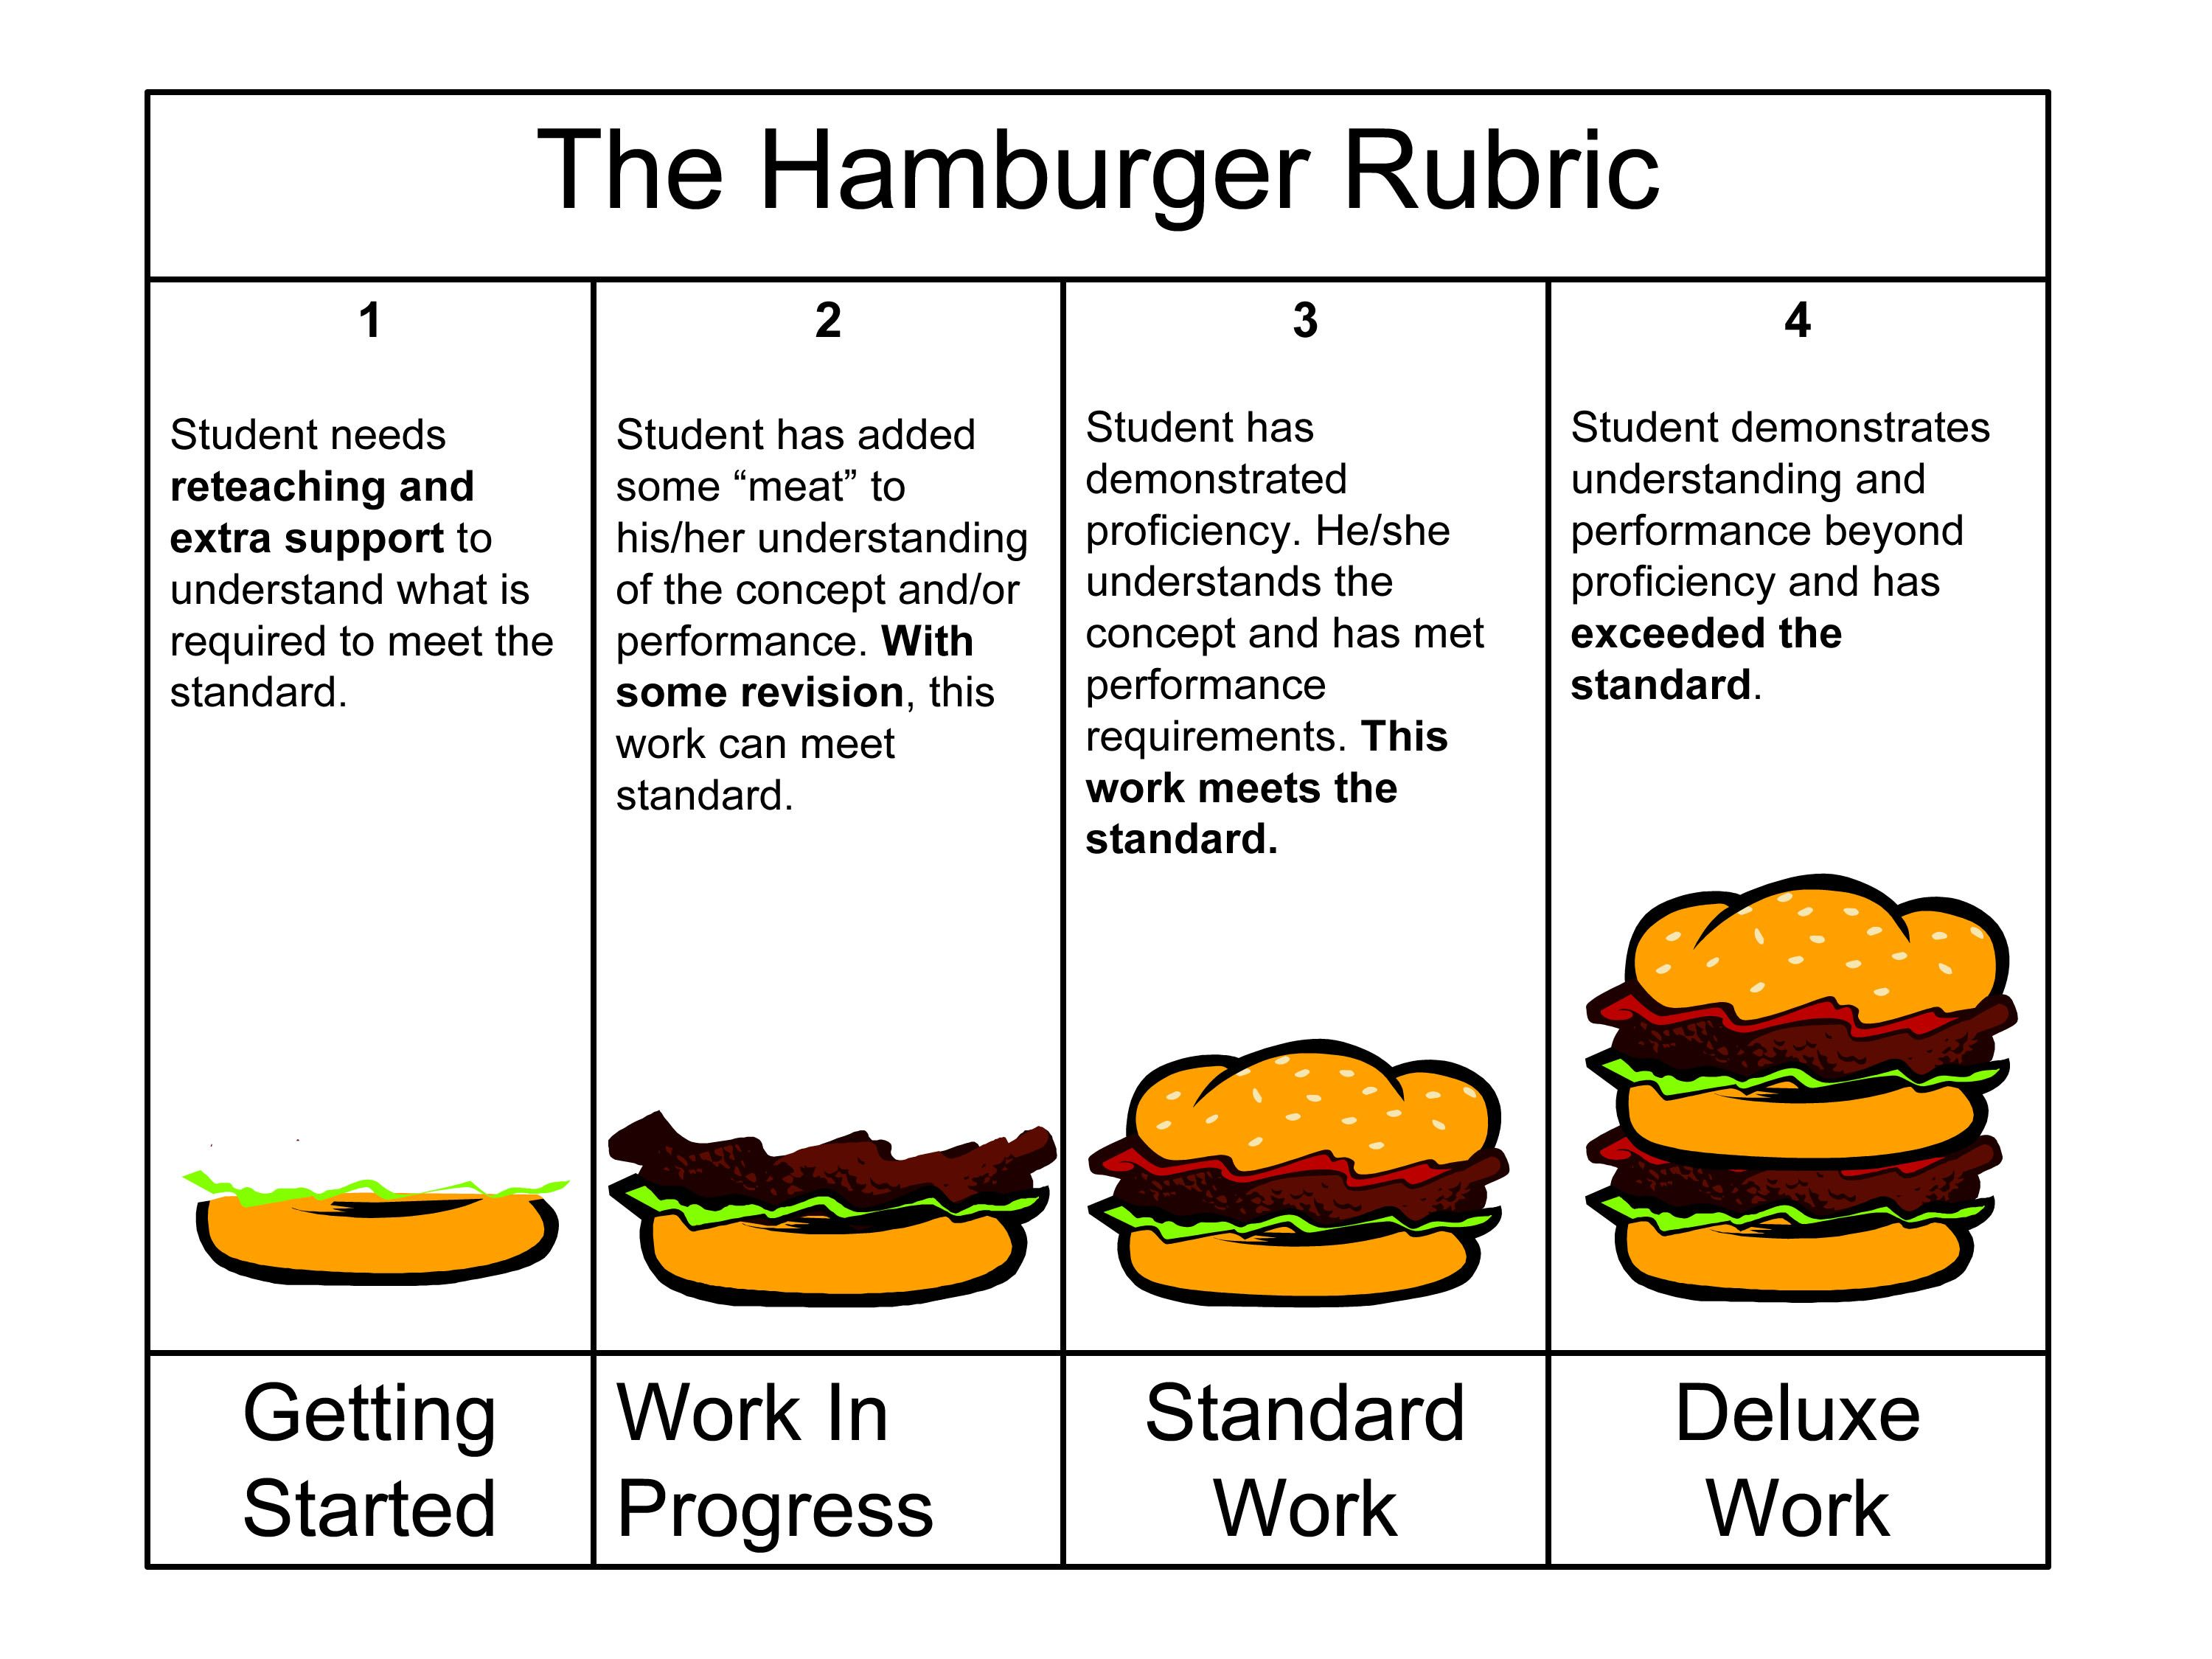 008 Hamburger Rubric Easy visual for kids work quality